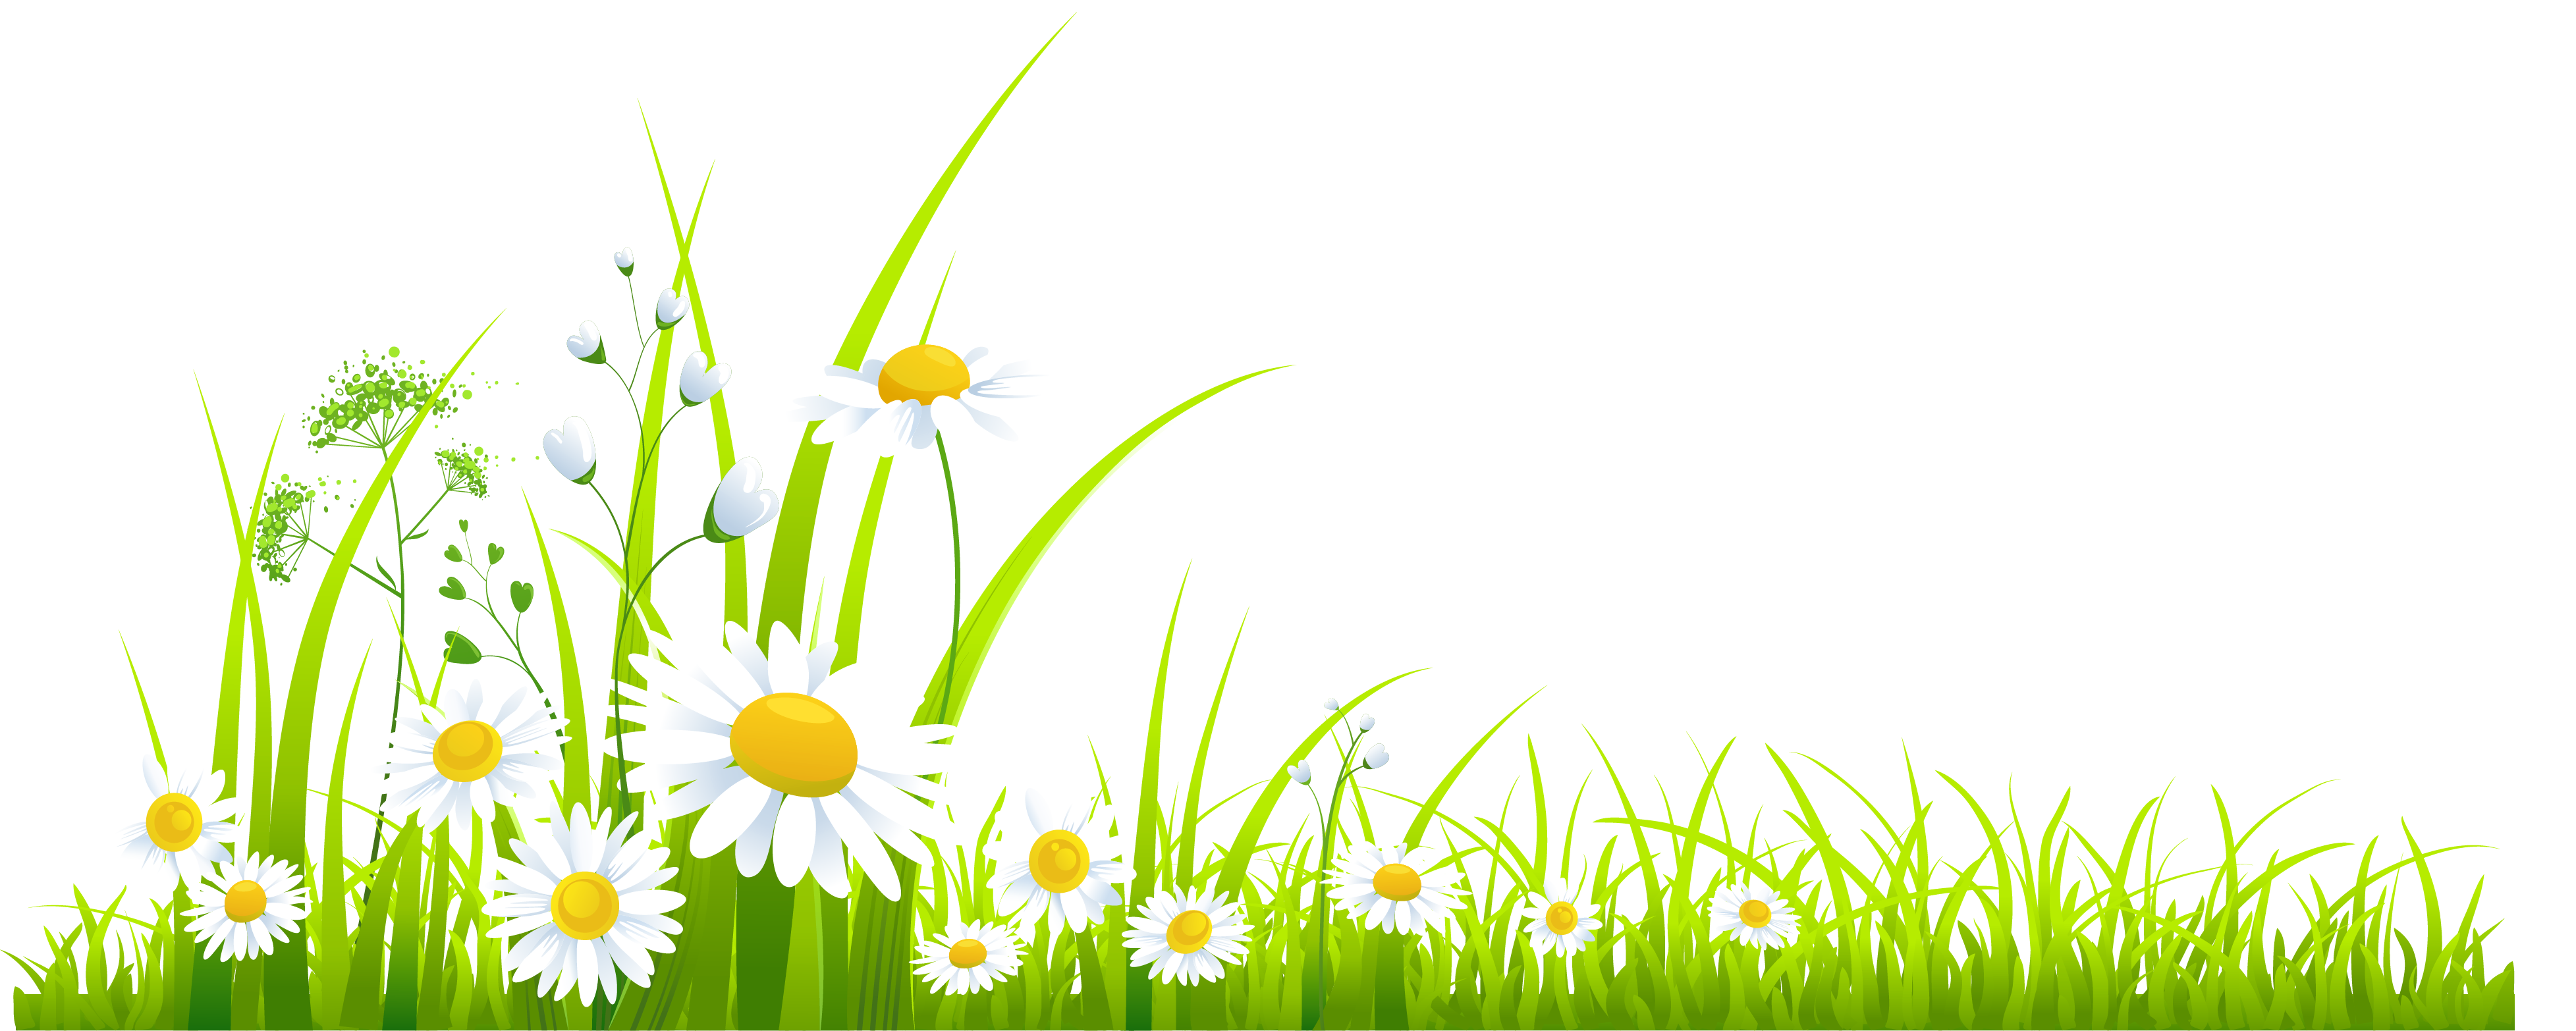 hight resolution of spring grass clipart